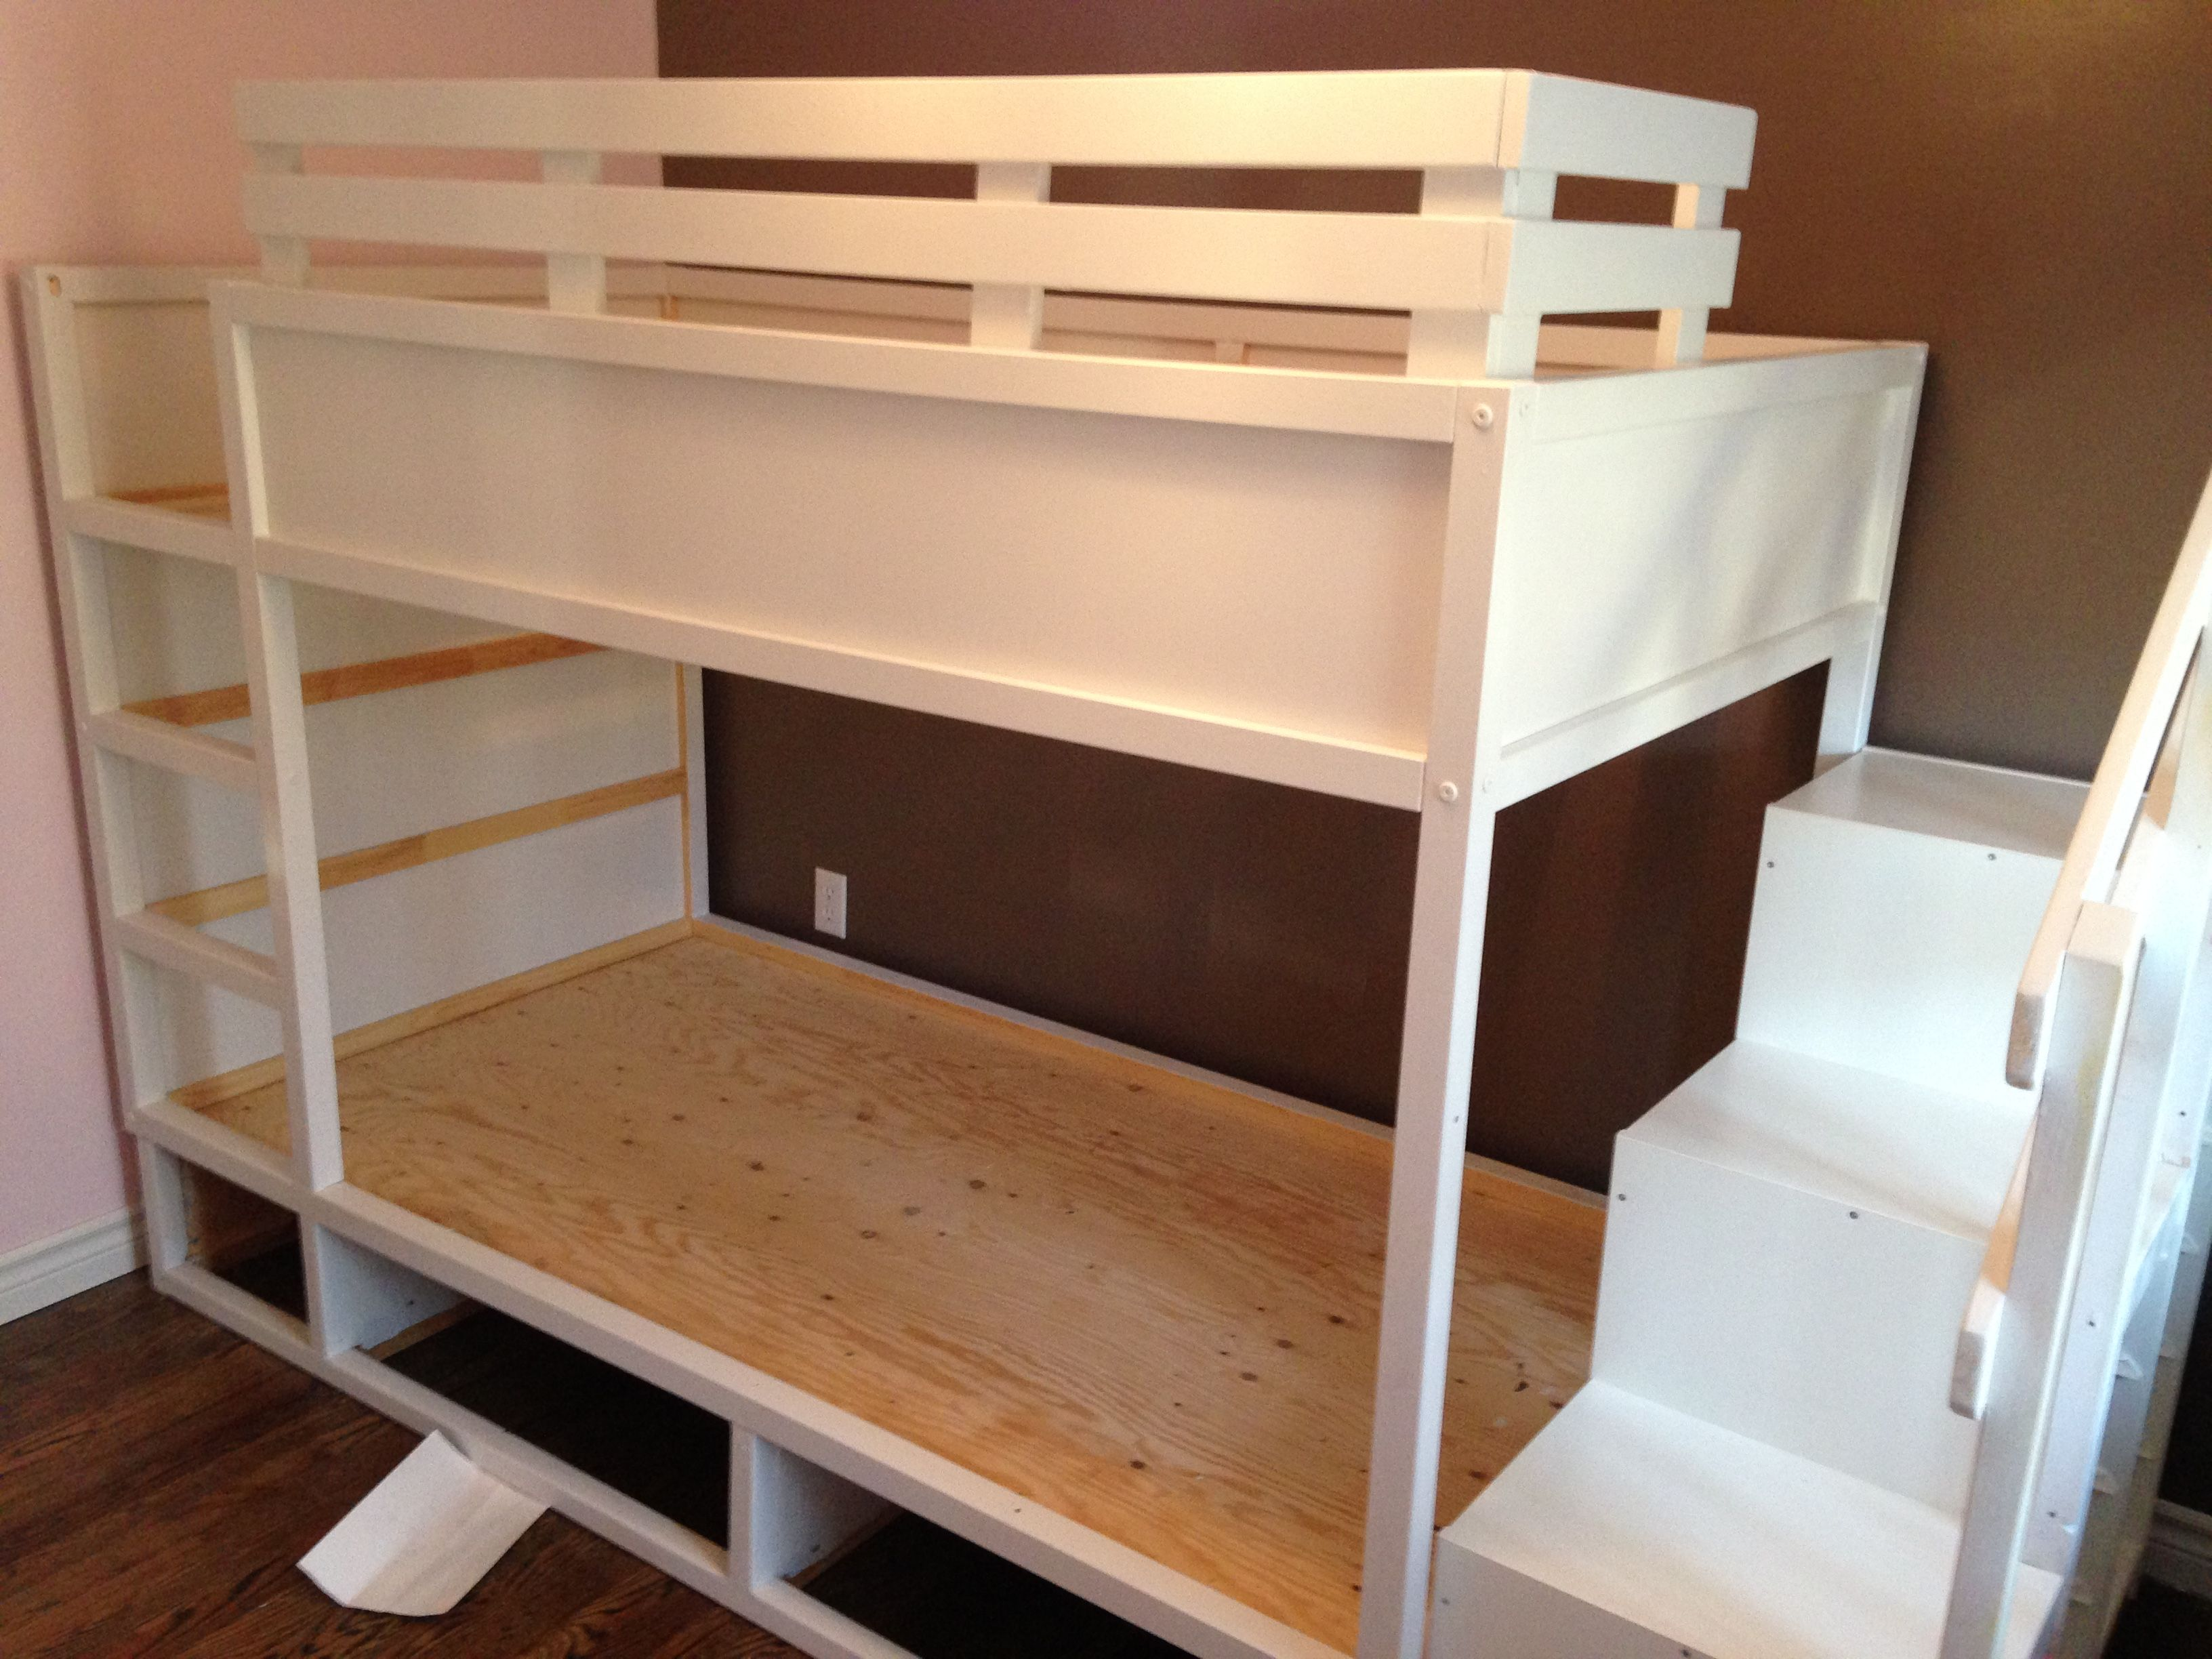 ikea kura lifted and made into a bunk bed plus room for under bed kura bed with crib. Black Bedroom Furniture Sets. Home Design Ideas